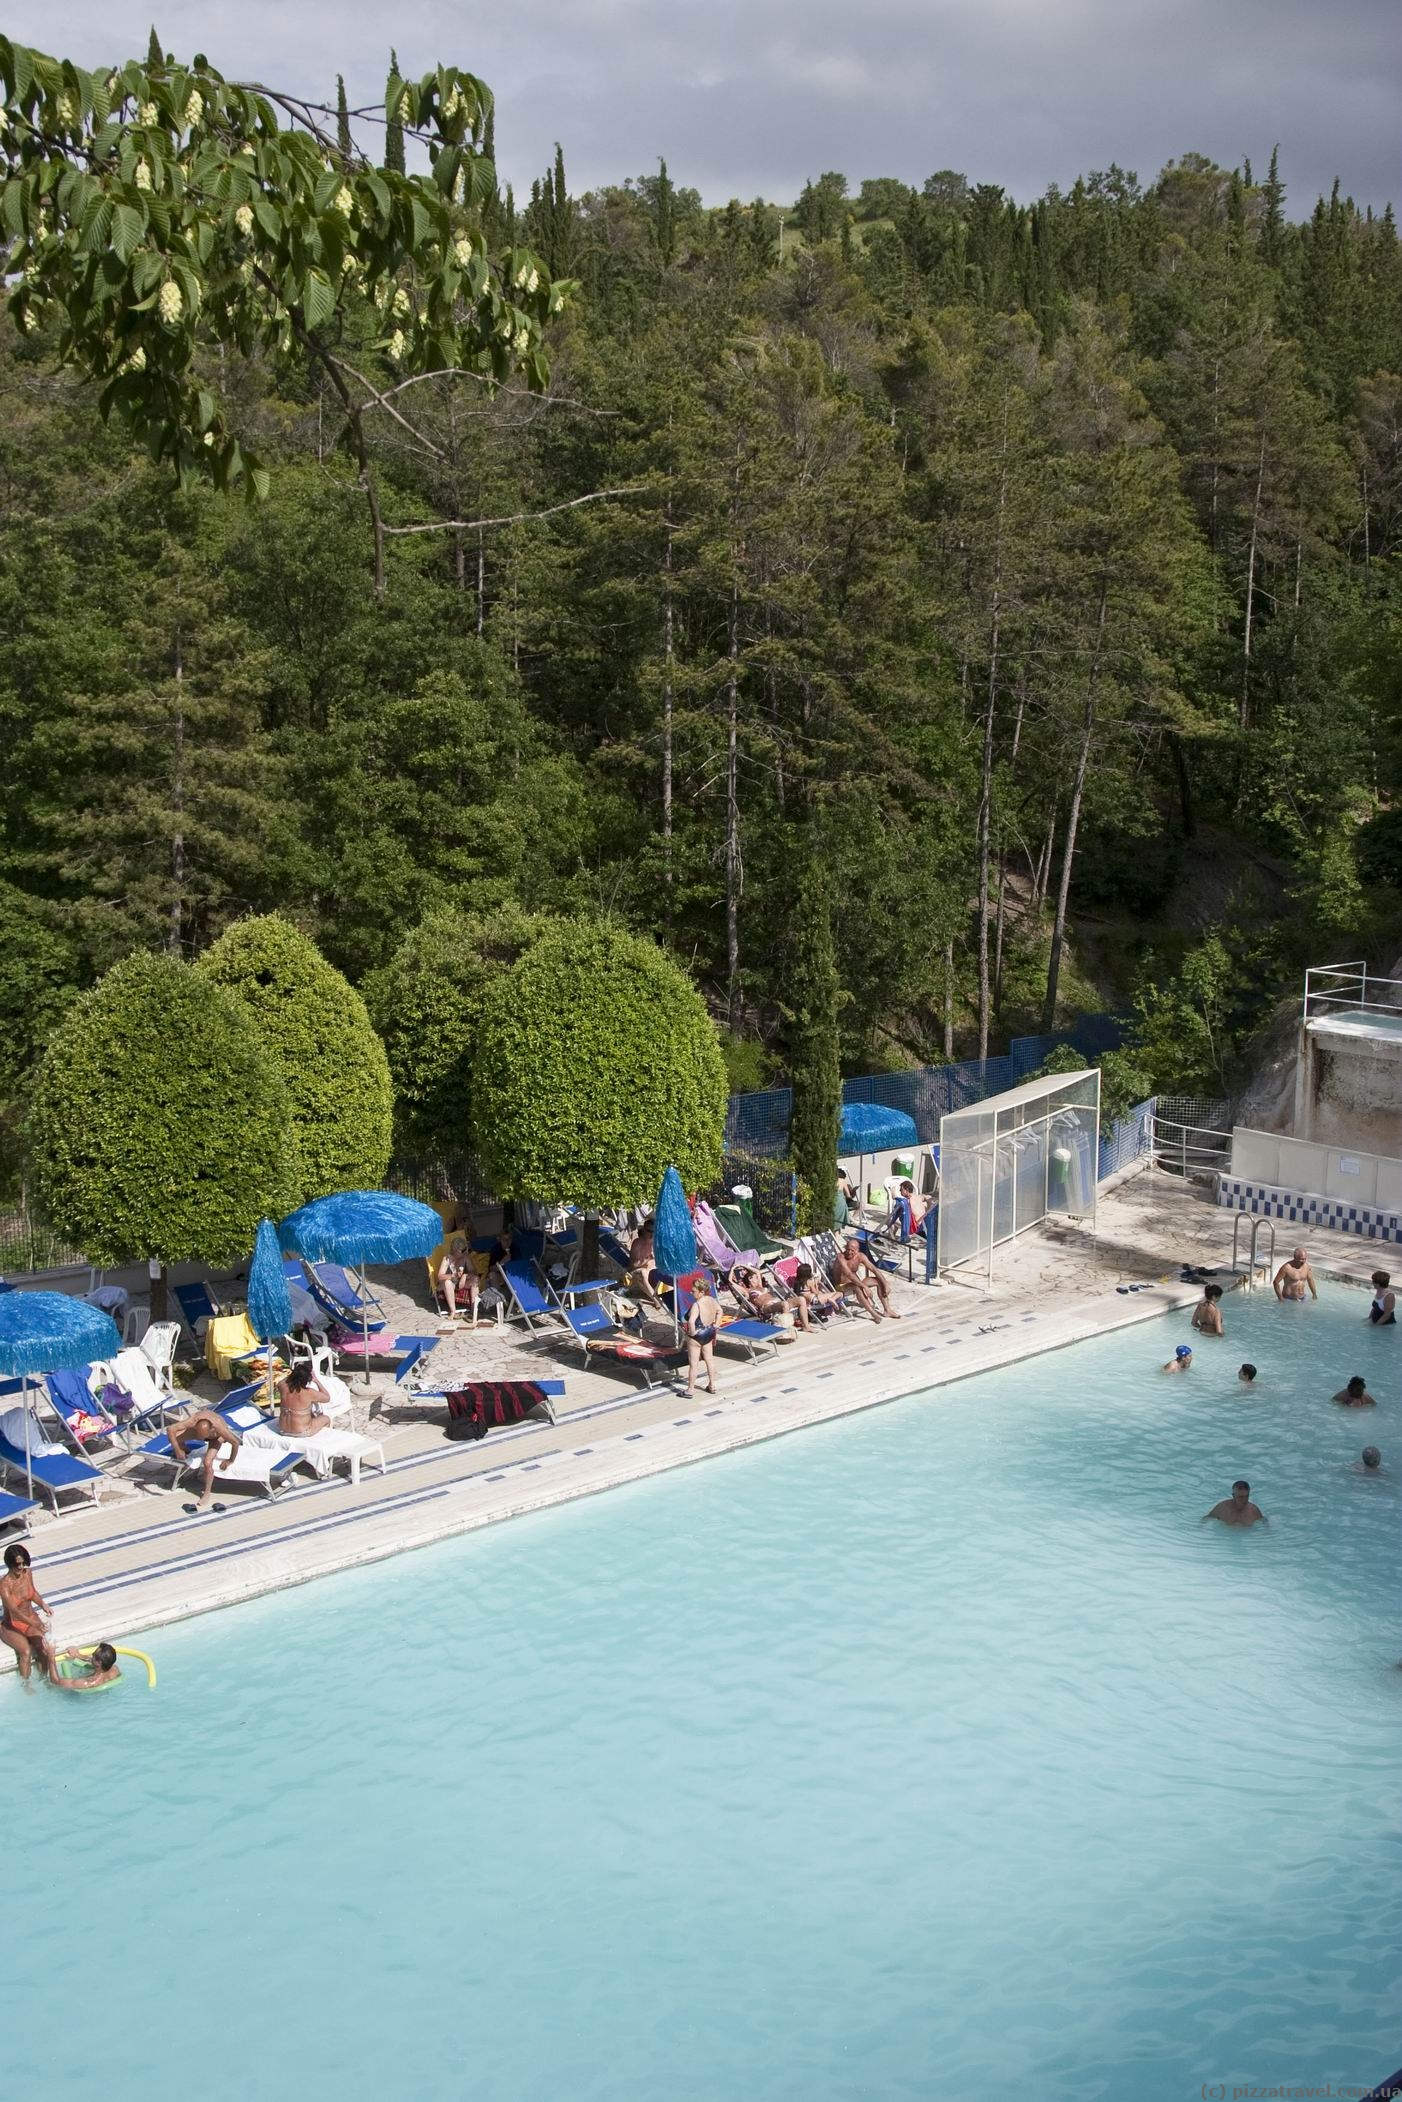 Bagni san filippo italy blog about interesting places - Bagni san filippo hotel ...